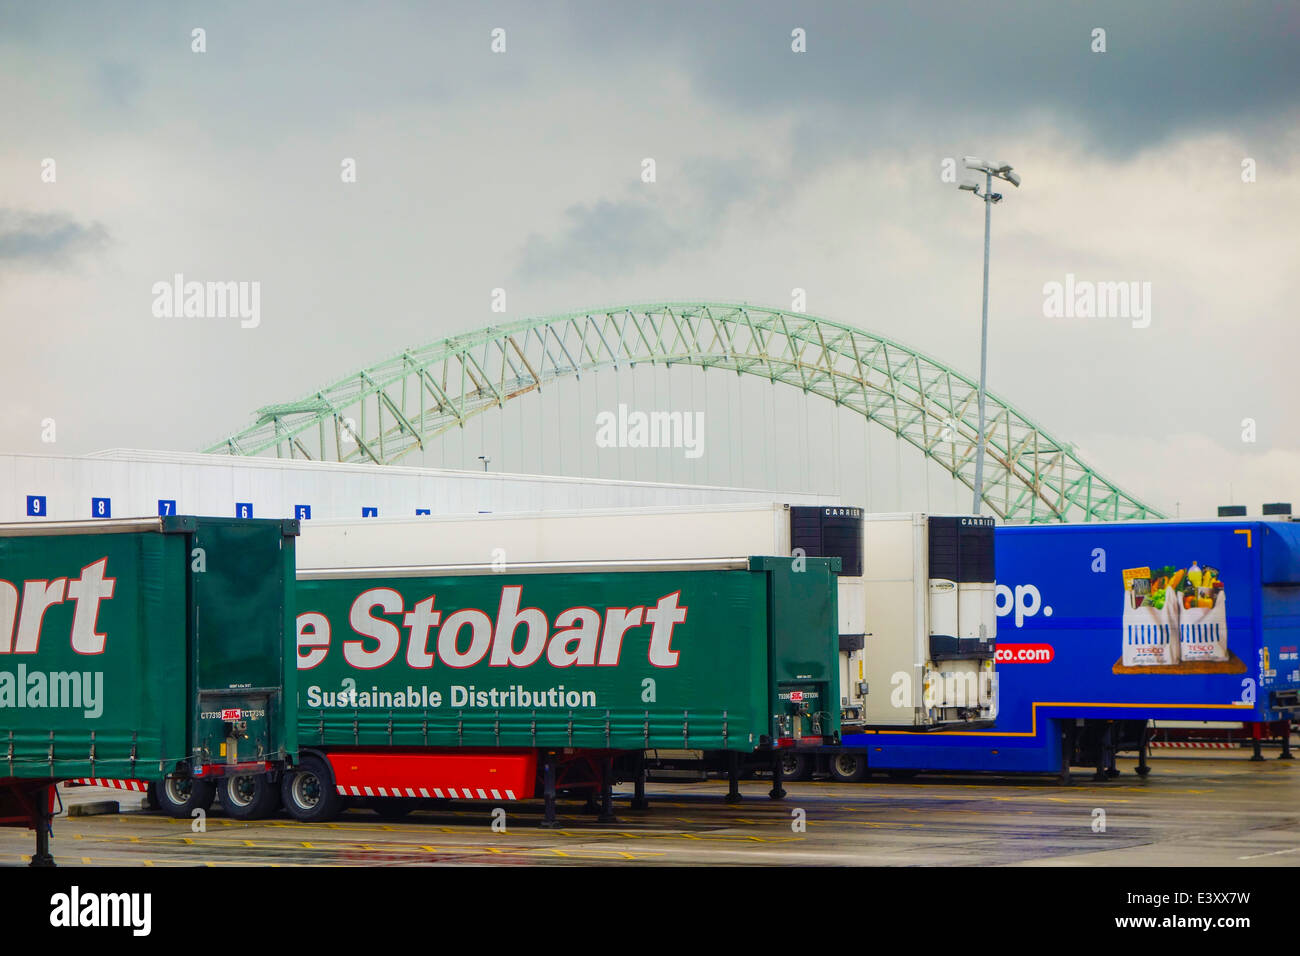 Eddie Stobart trailers parked up at Tesco distribution centre at Widnes. - Stock Image